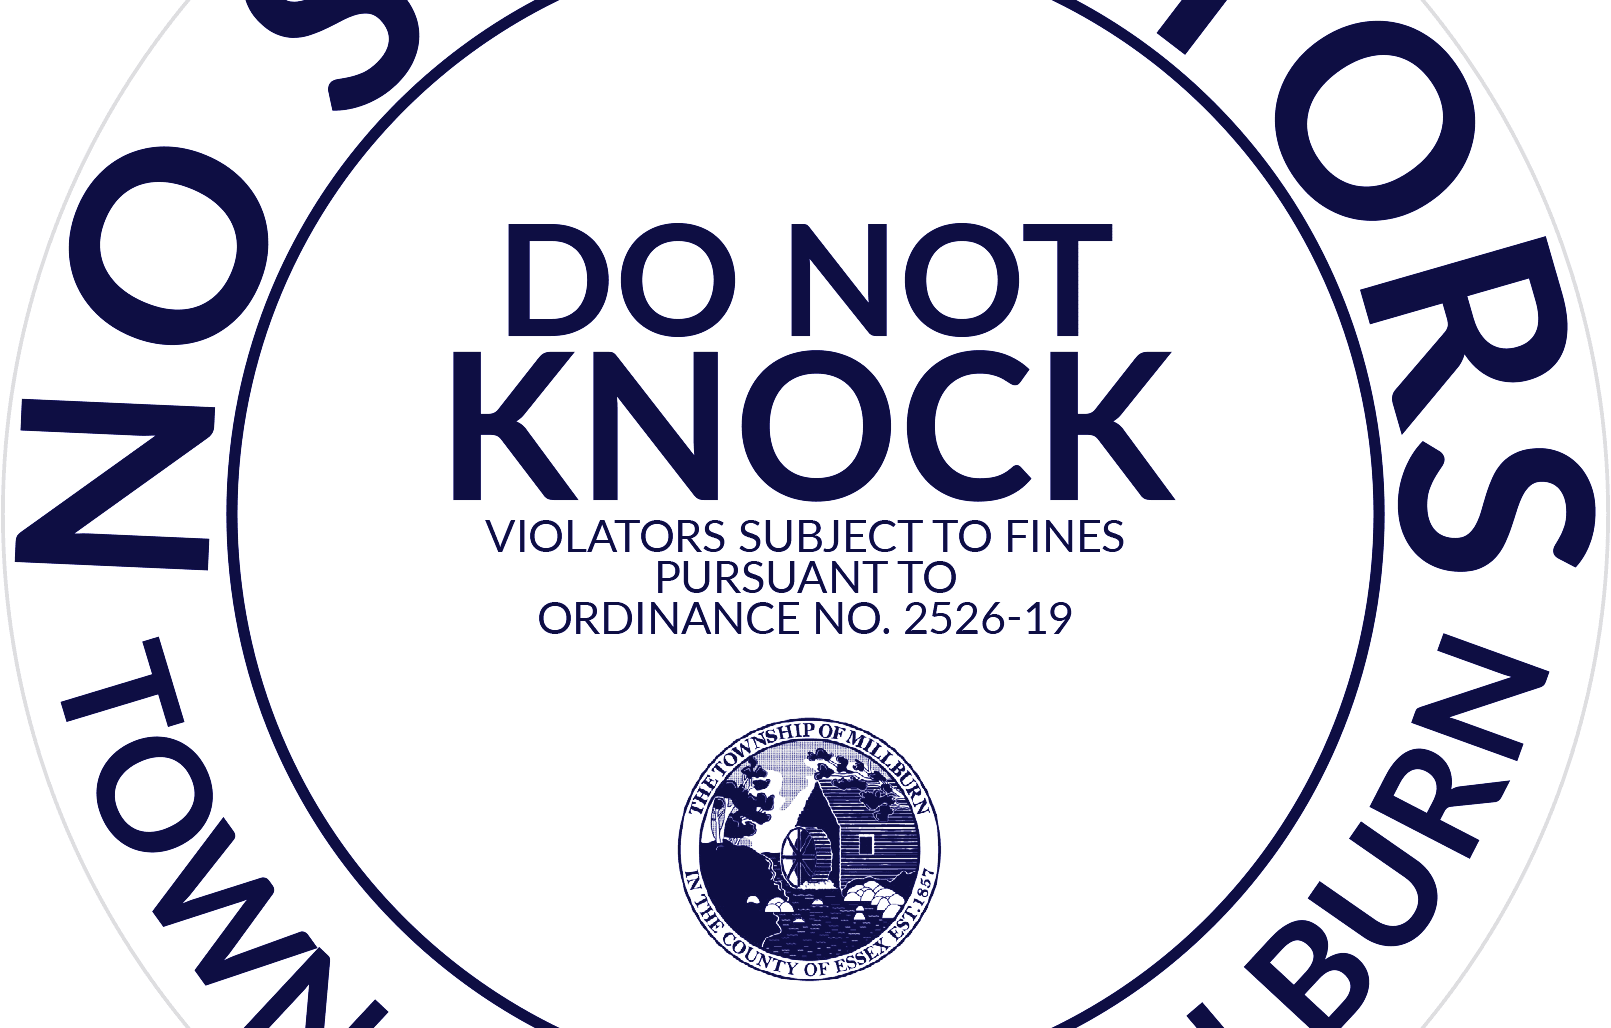 Blue and White Do Not Knock Sticker for use within the Township of Millburn